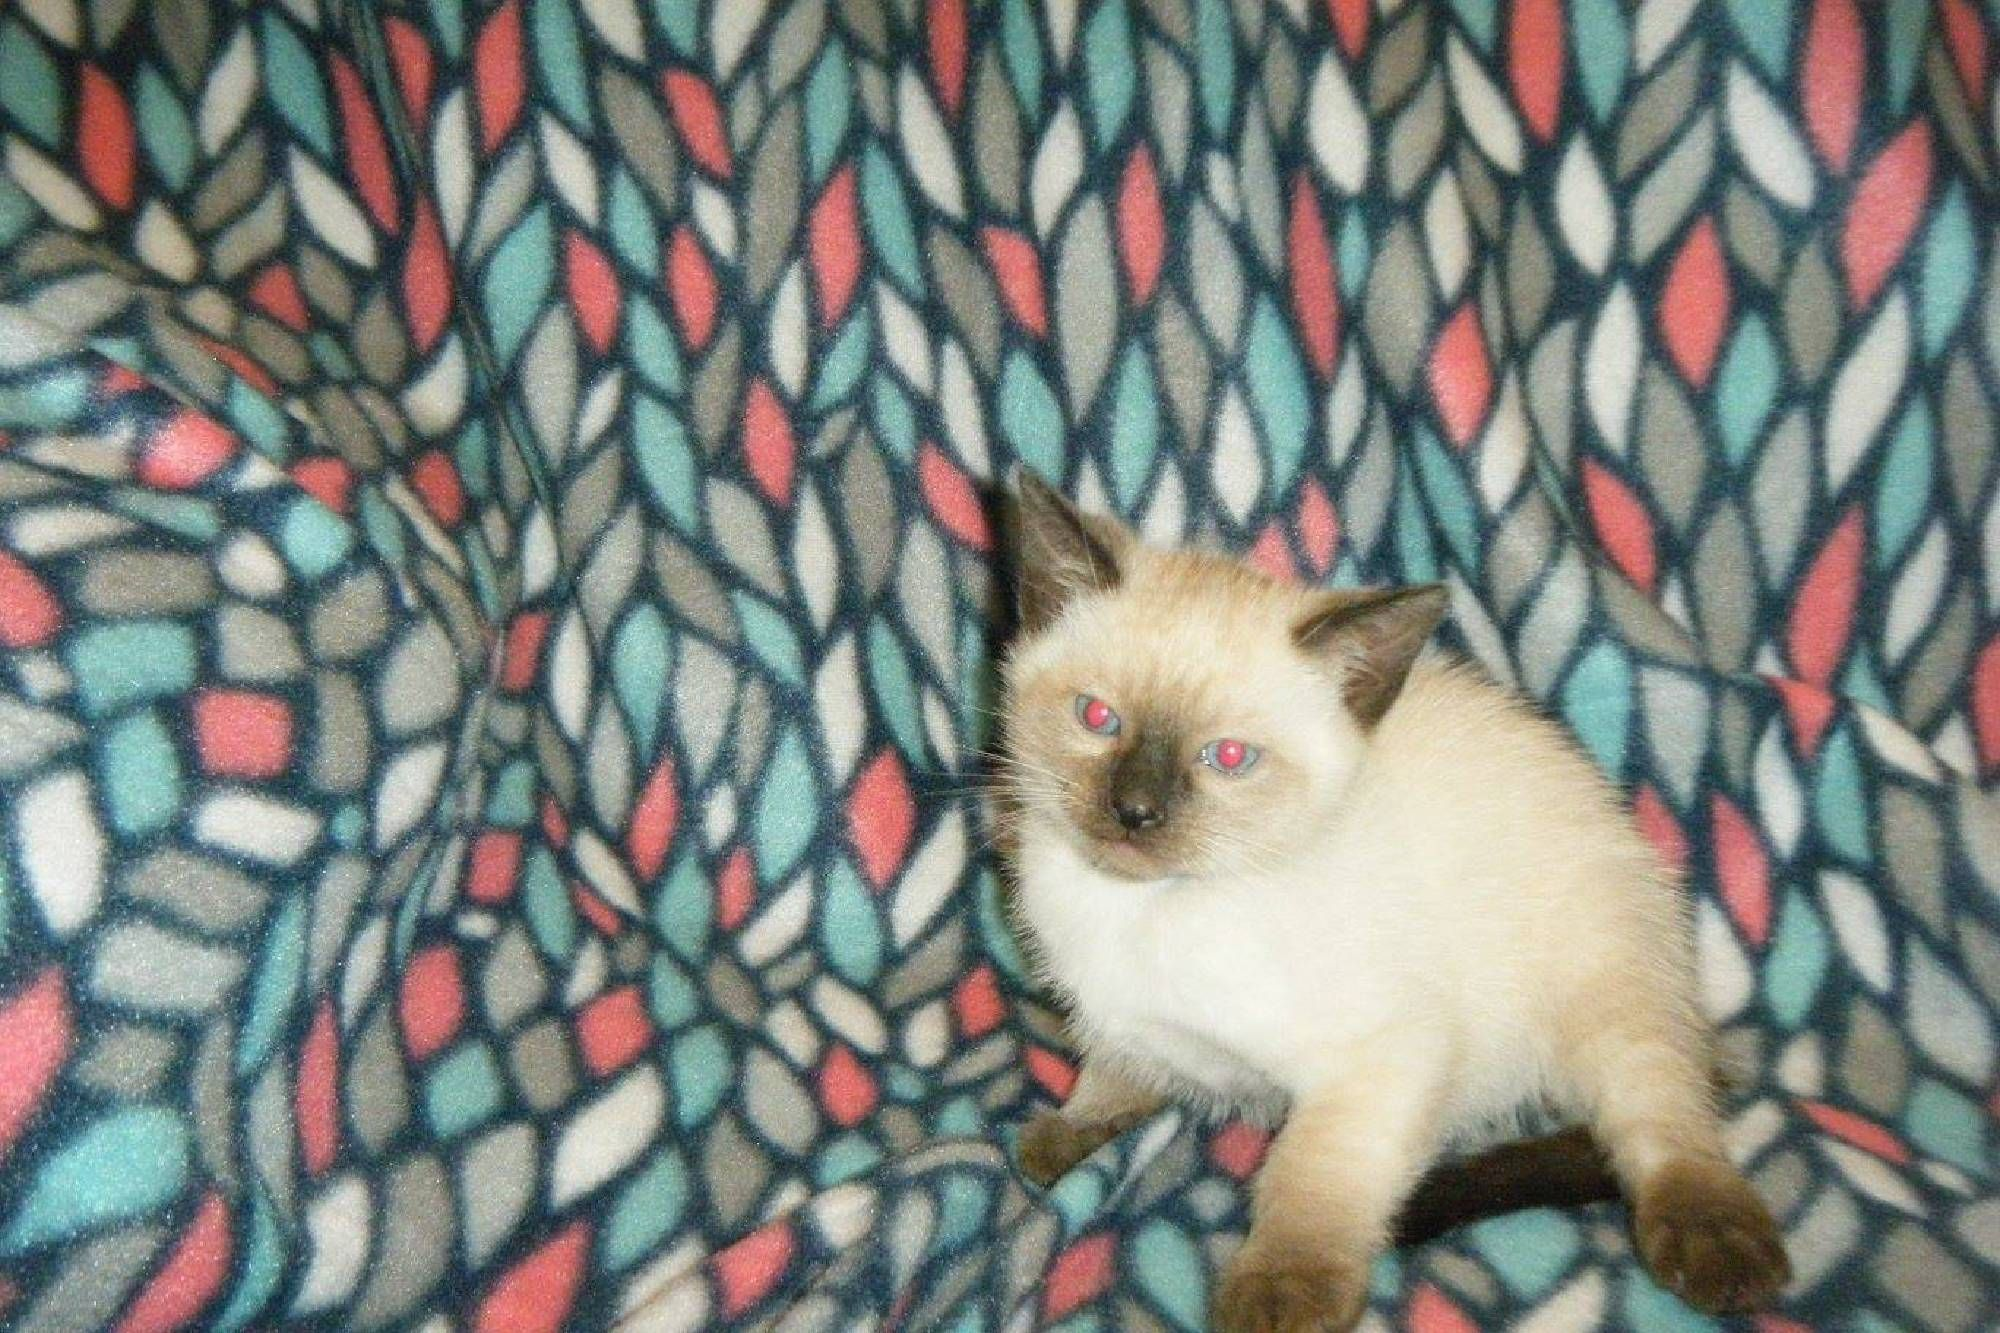 Siamese Kittens For Sale In Pa Are The Reasons For You To Purchase